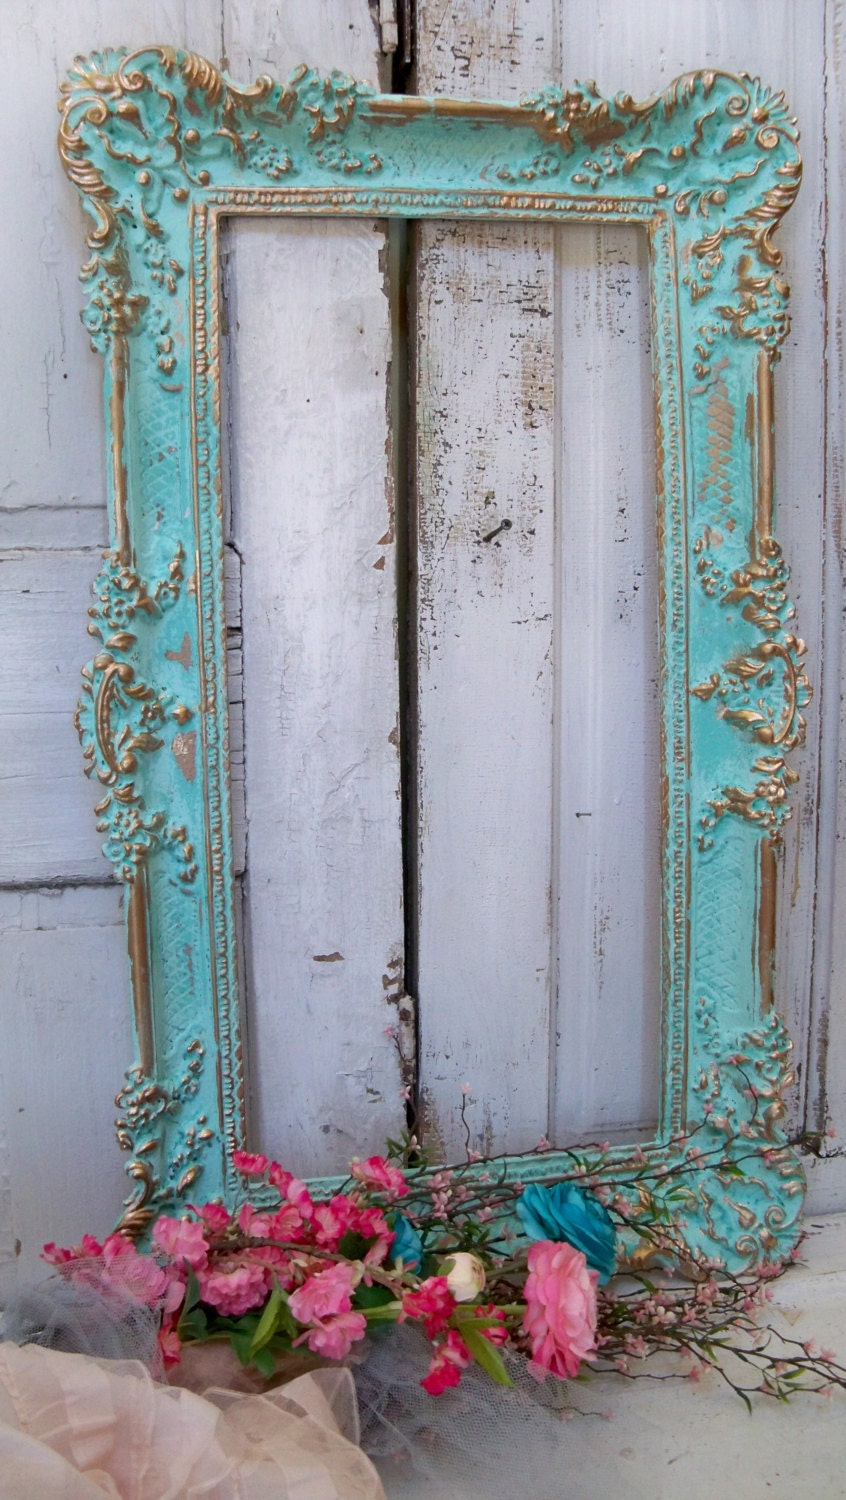 Large ornate vintage frame aqua accented gold shabby chic romantic wall home decor Anita Spero - AnitaSperoDesign